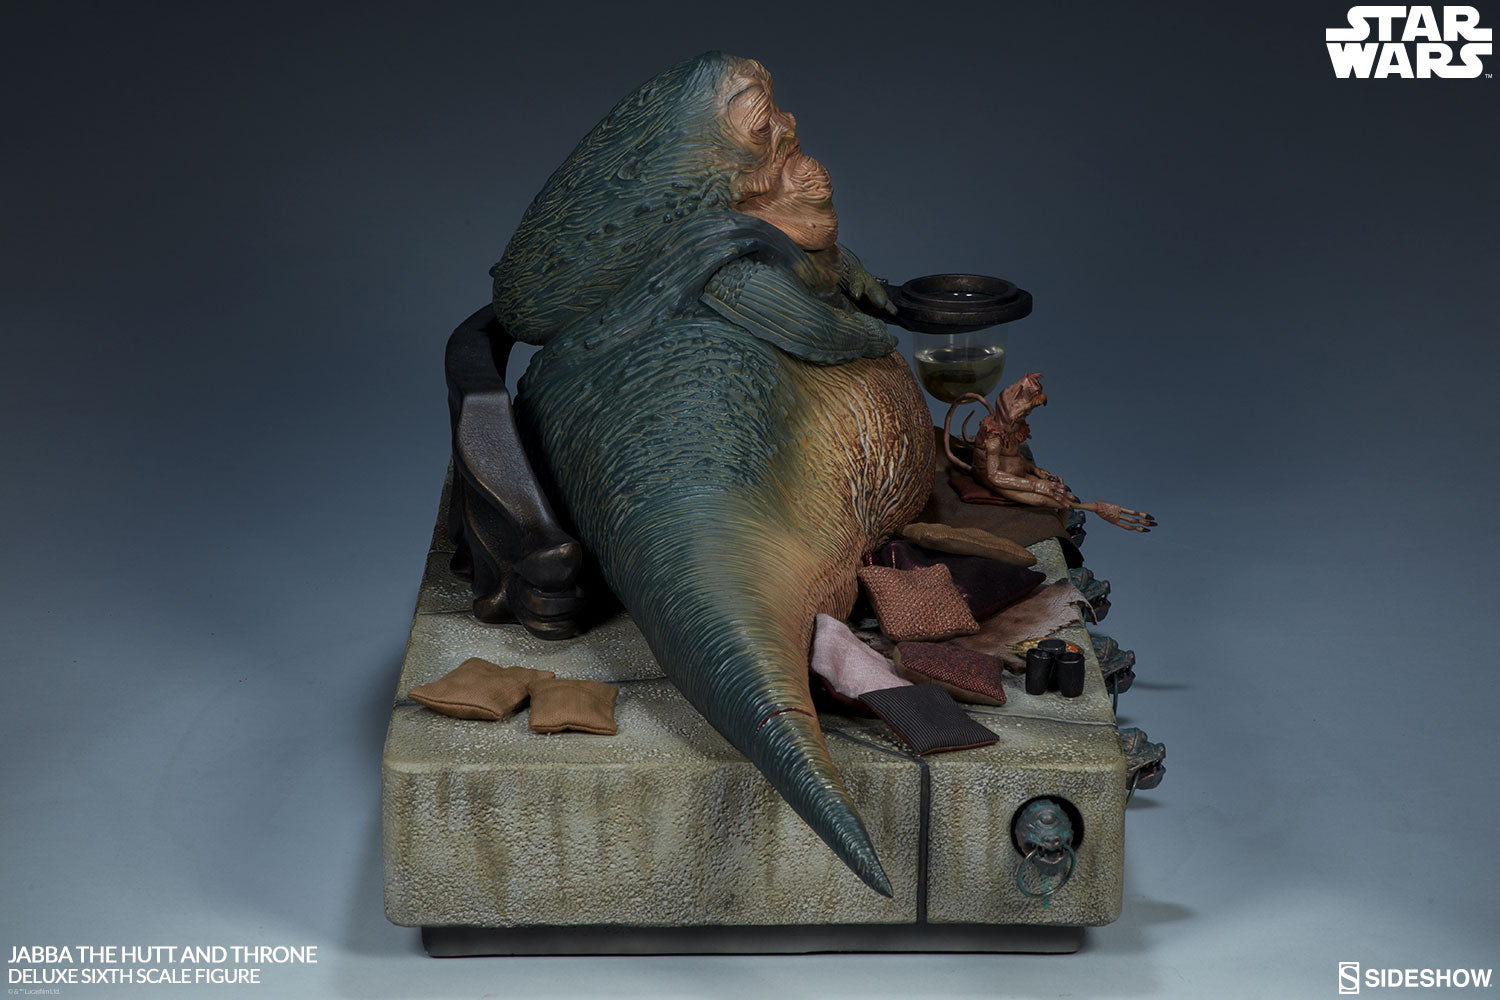 Jabba The Hutt and Throne Deluxe